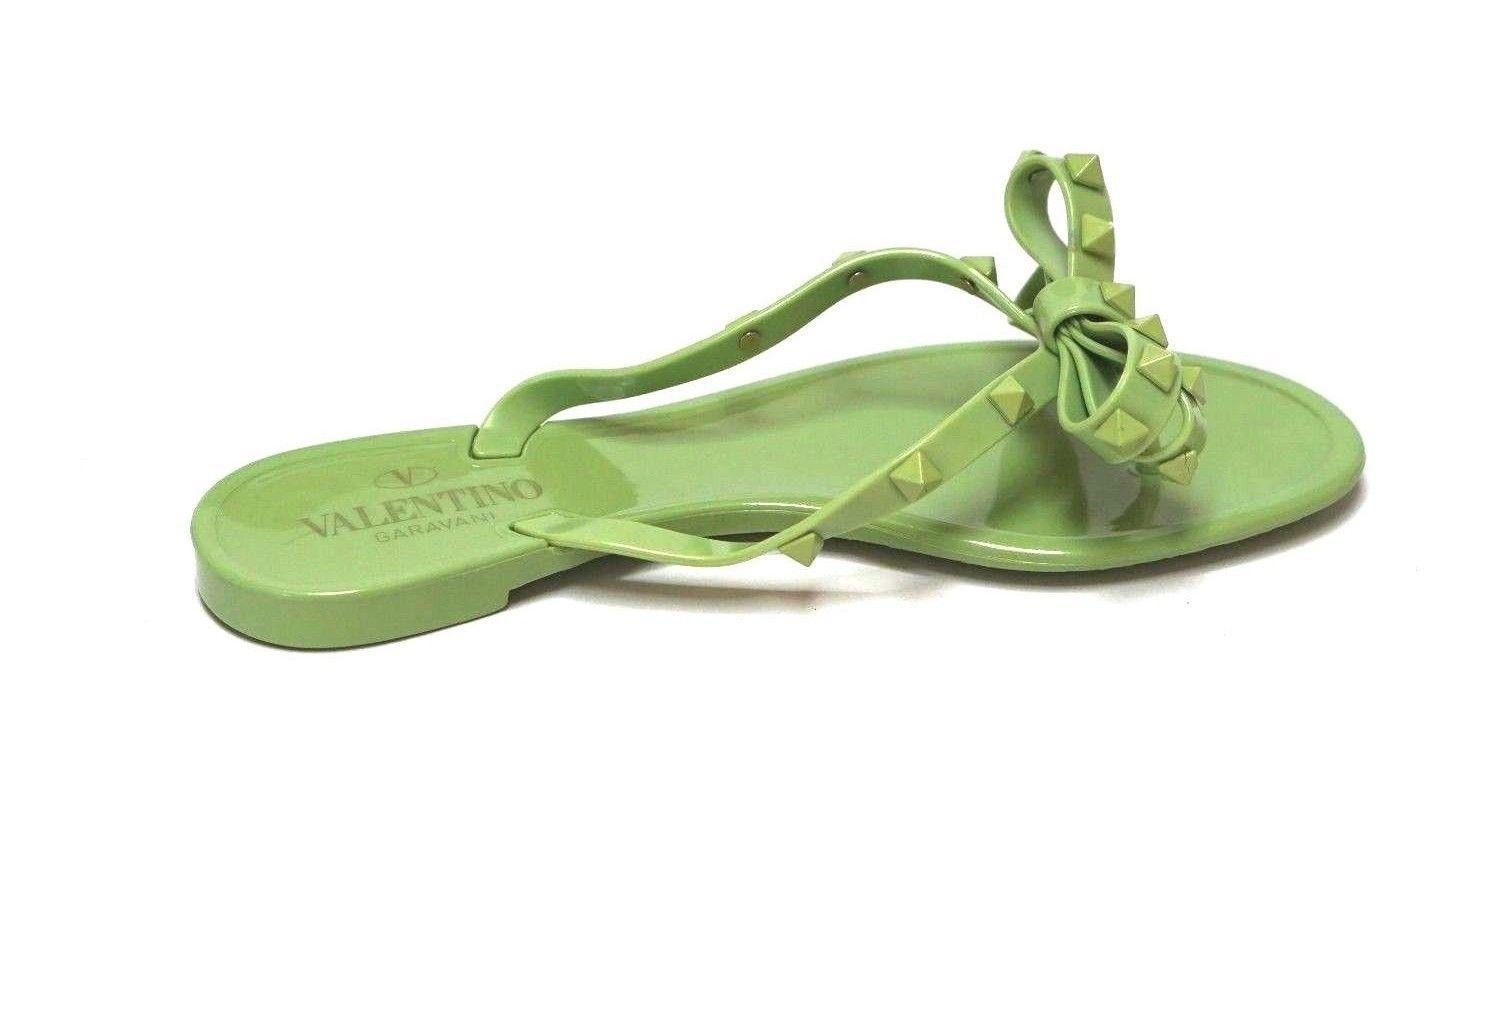 2b926037c84a US 6) Valentino Green Rockstud Jelly Jelly Jelly Sandals Size EU 36 (Approx.